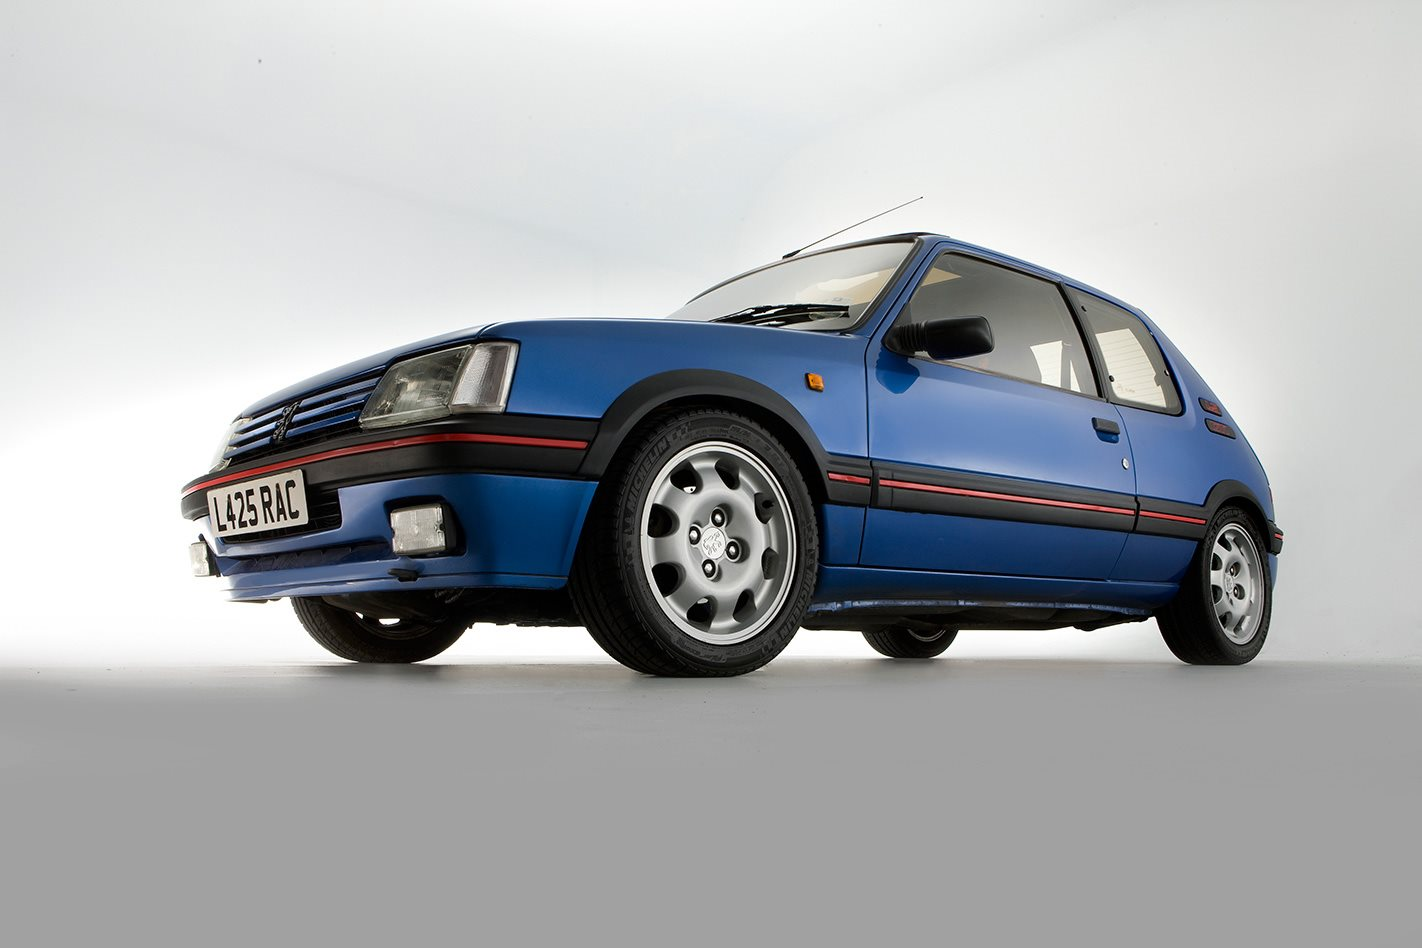 1987 Peugeot 205 GTi headlights